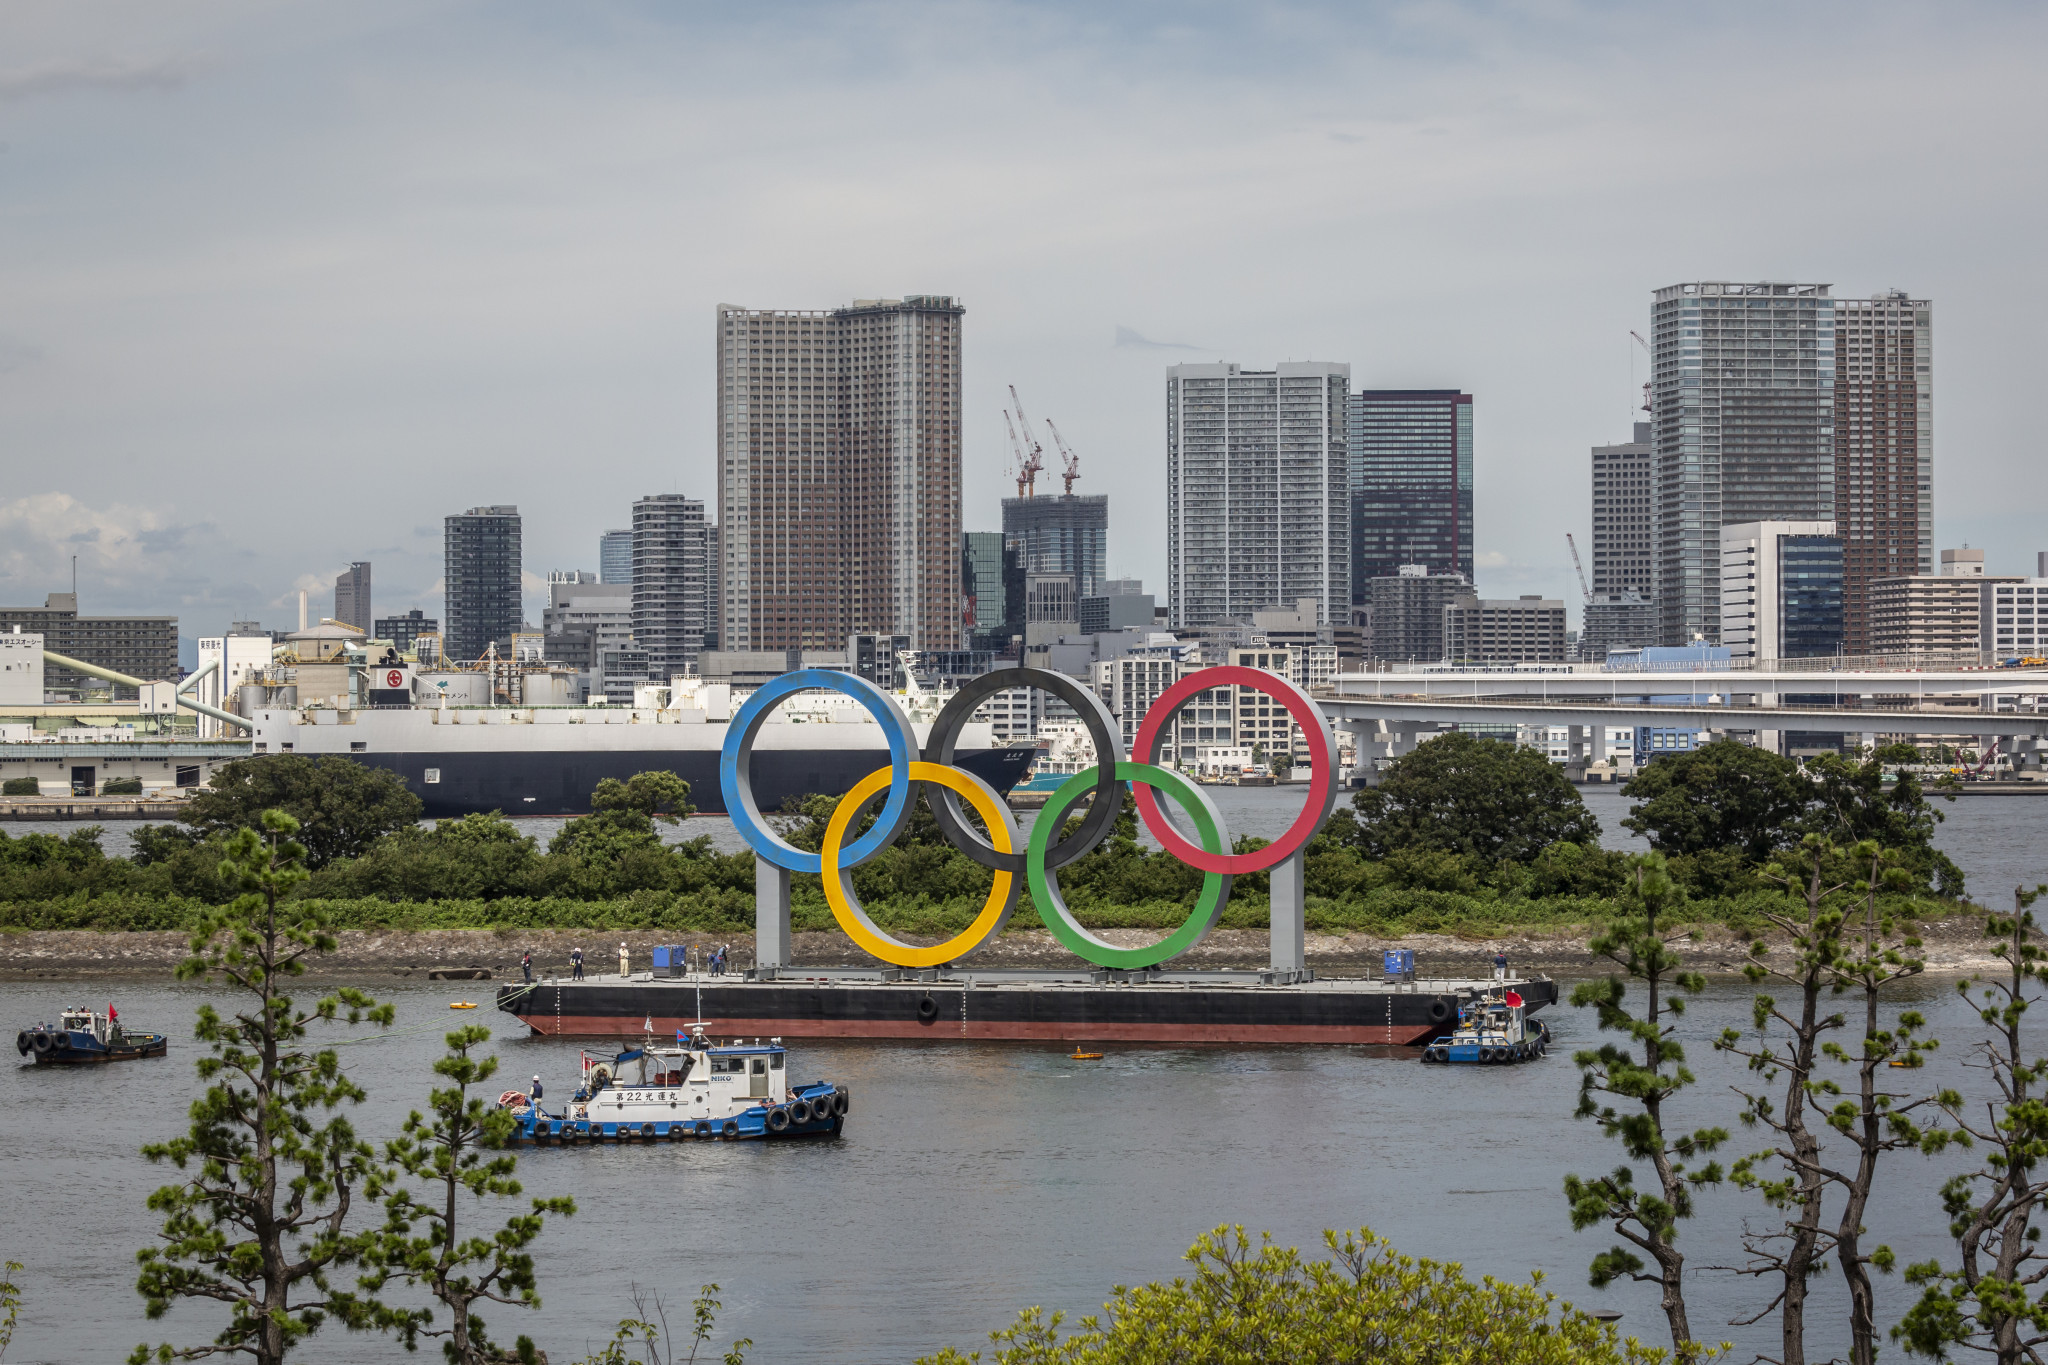 Tokyo 2020 to act as a benchmark for COVID-19 countermeasures to Beijing 2022